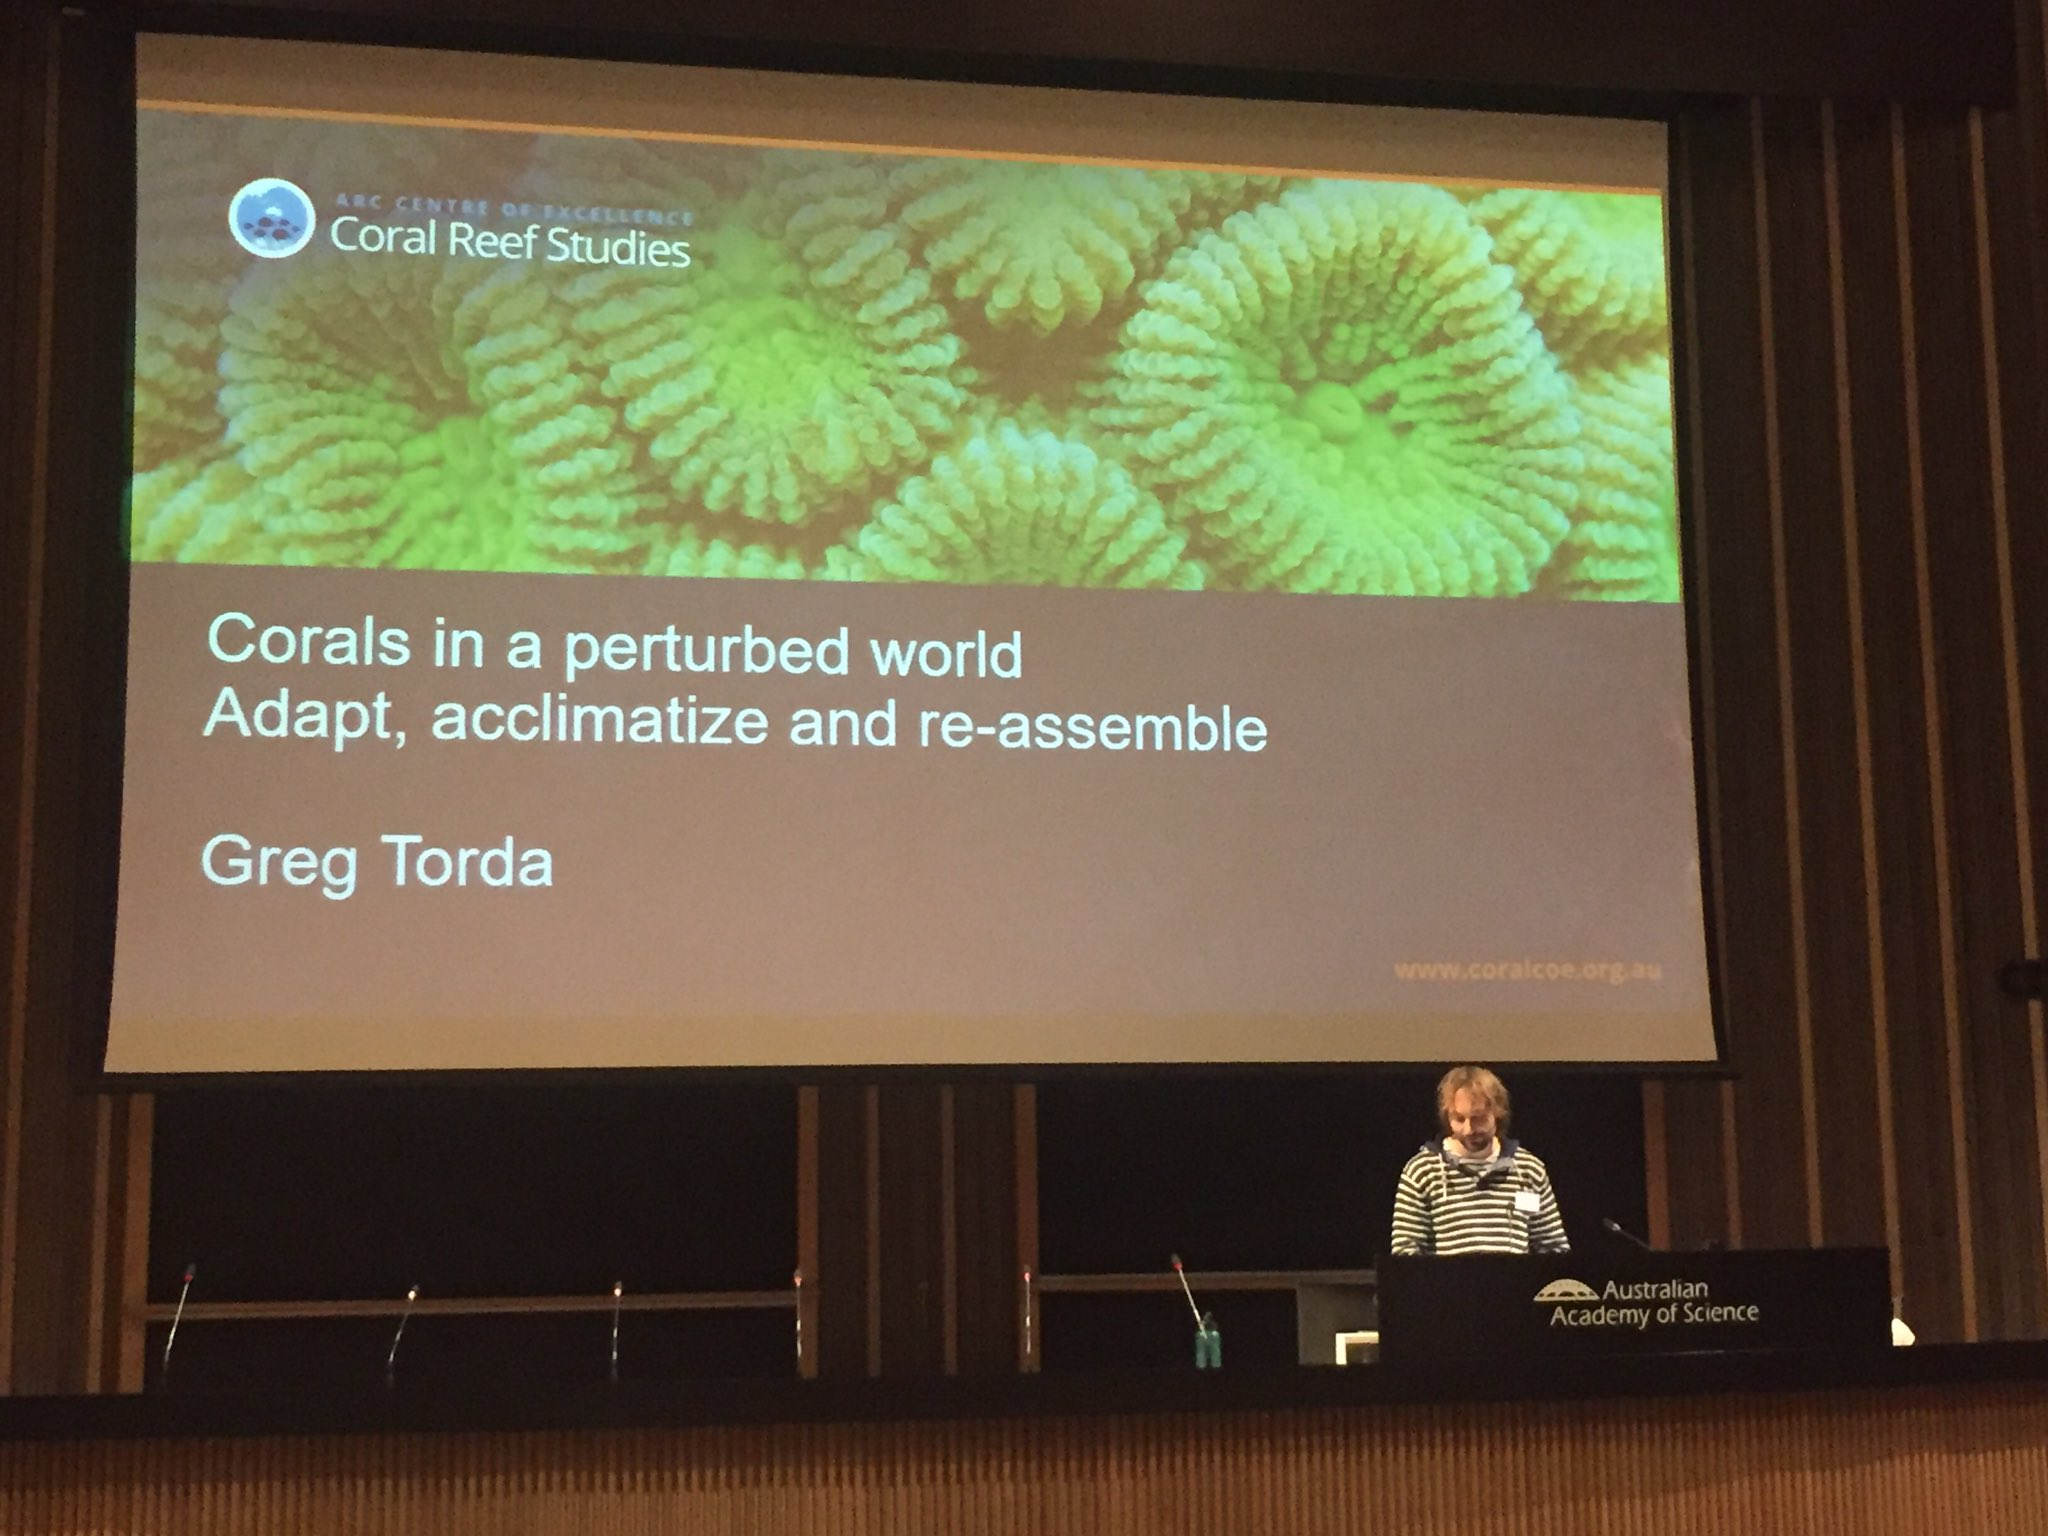 Corals Assemble! @DrGregTorda explains the 3 A's of coral change: adapt, acclimate, & assemble. @CoralCoE #CORAL17 https://t.co/by8v7OEPoF